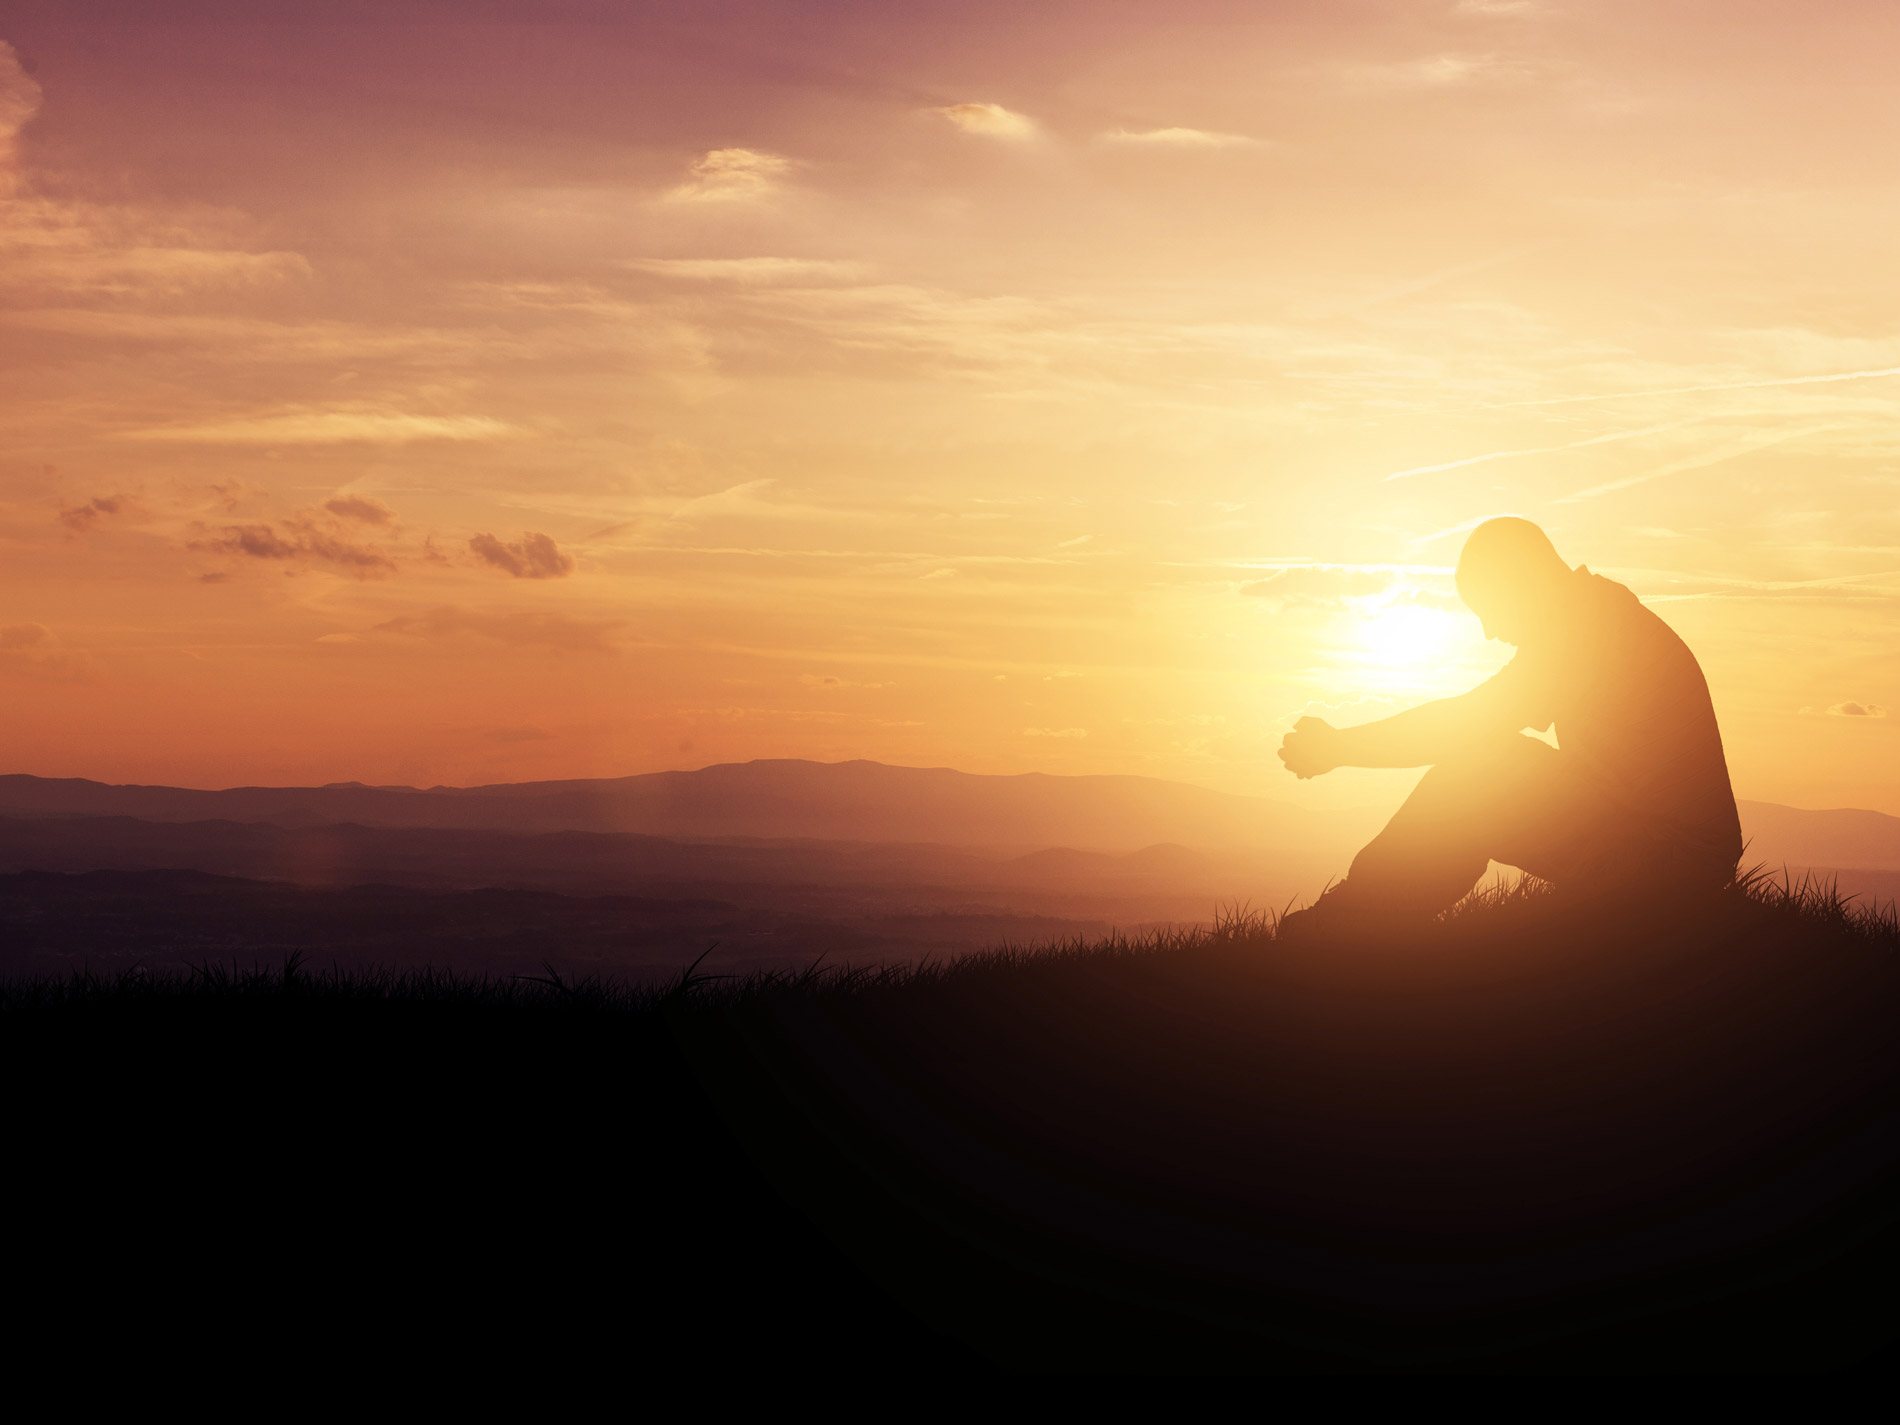 Man sitting on hill praying